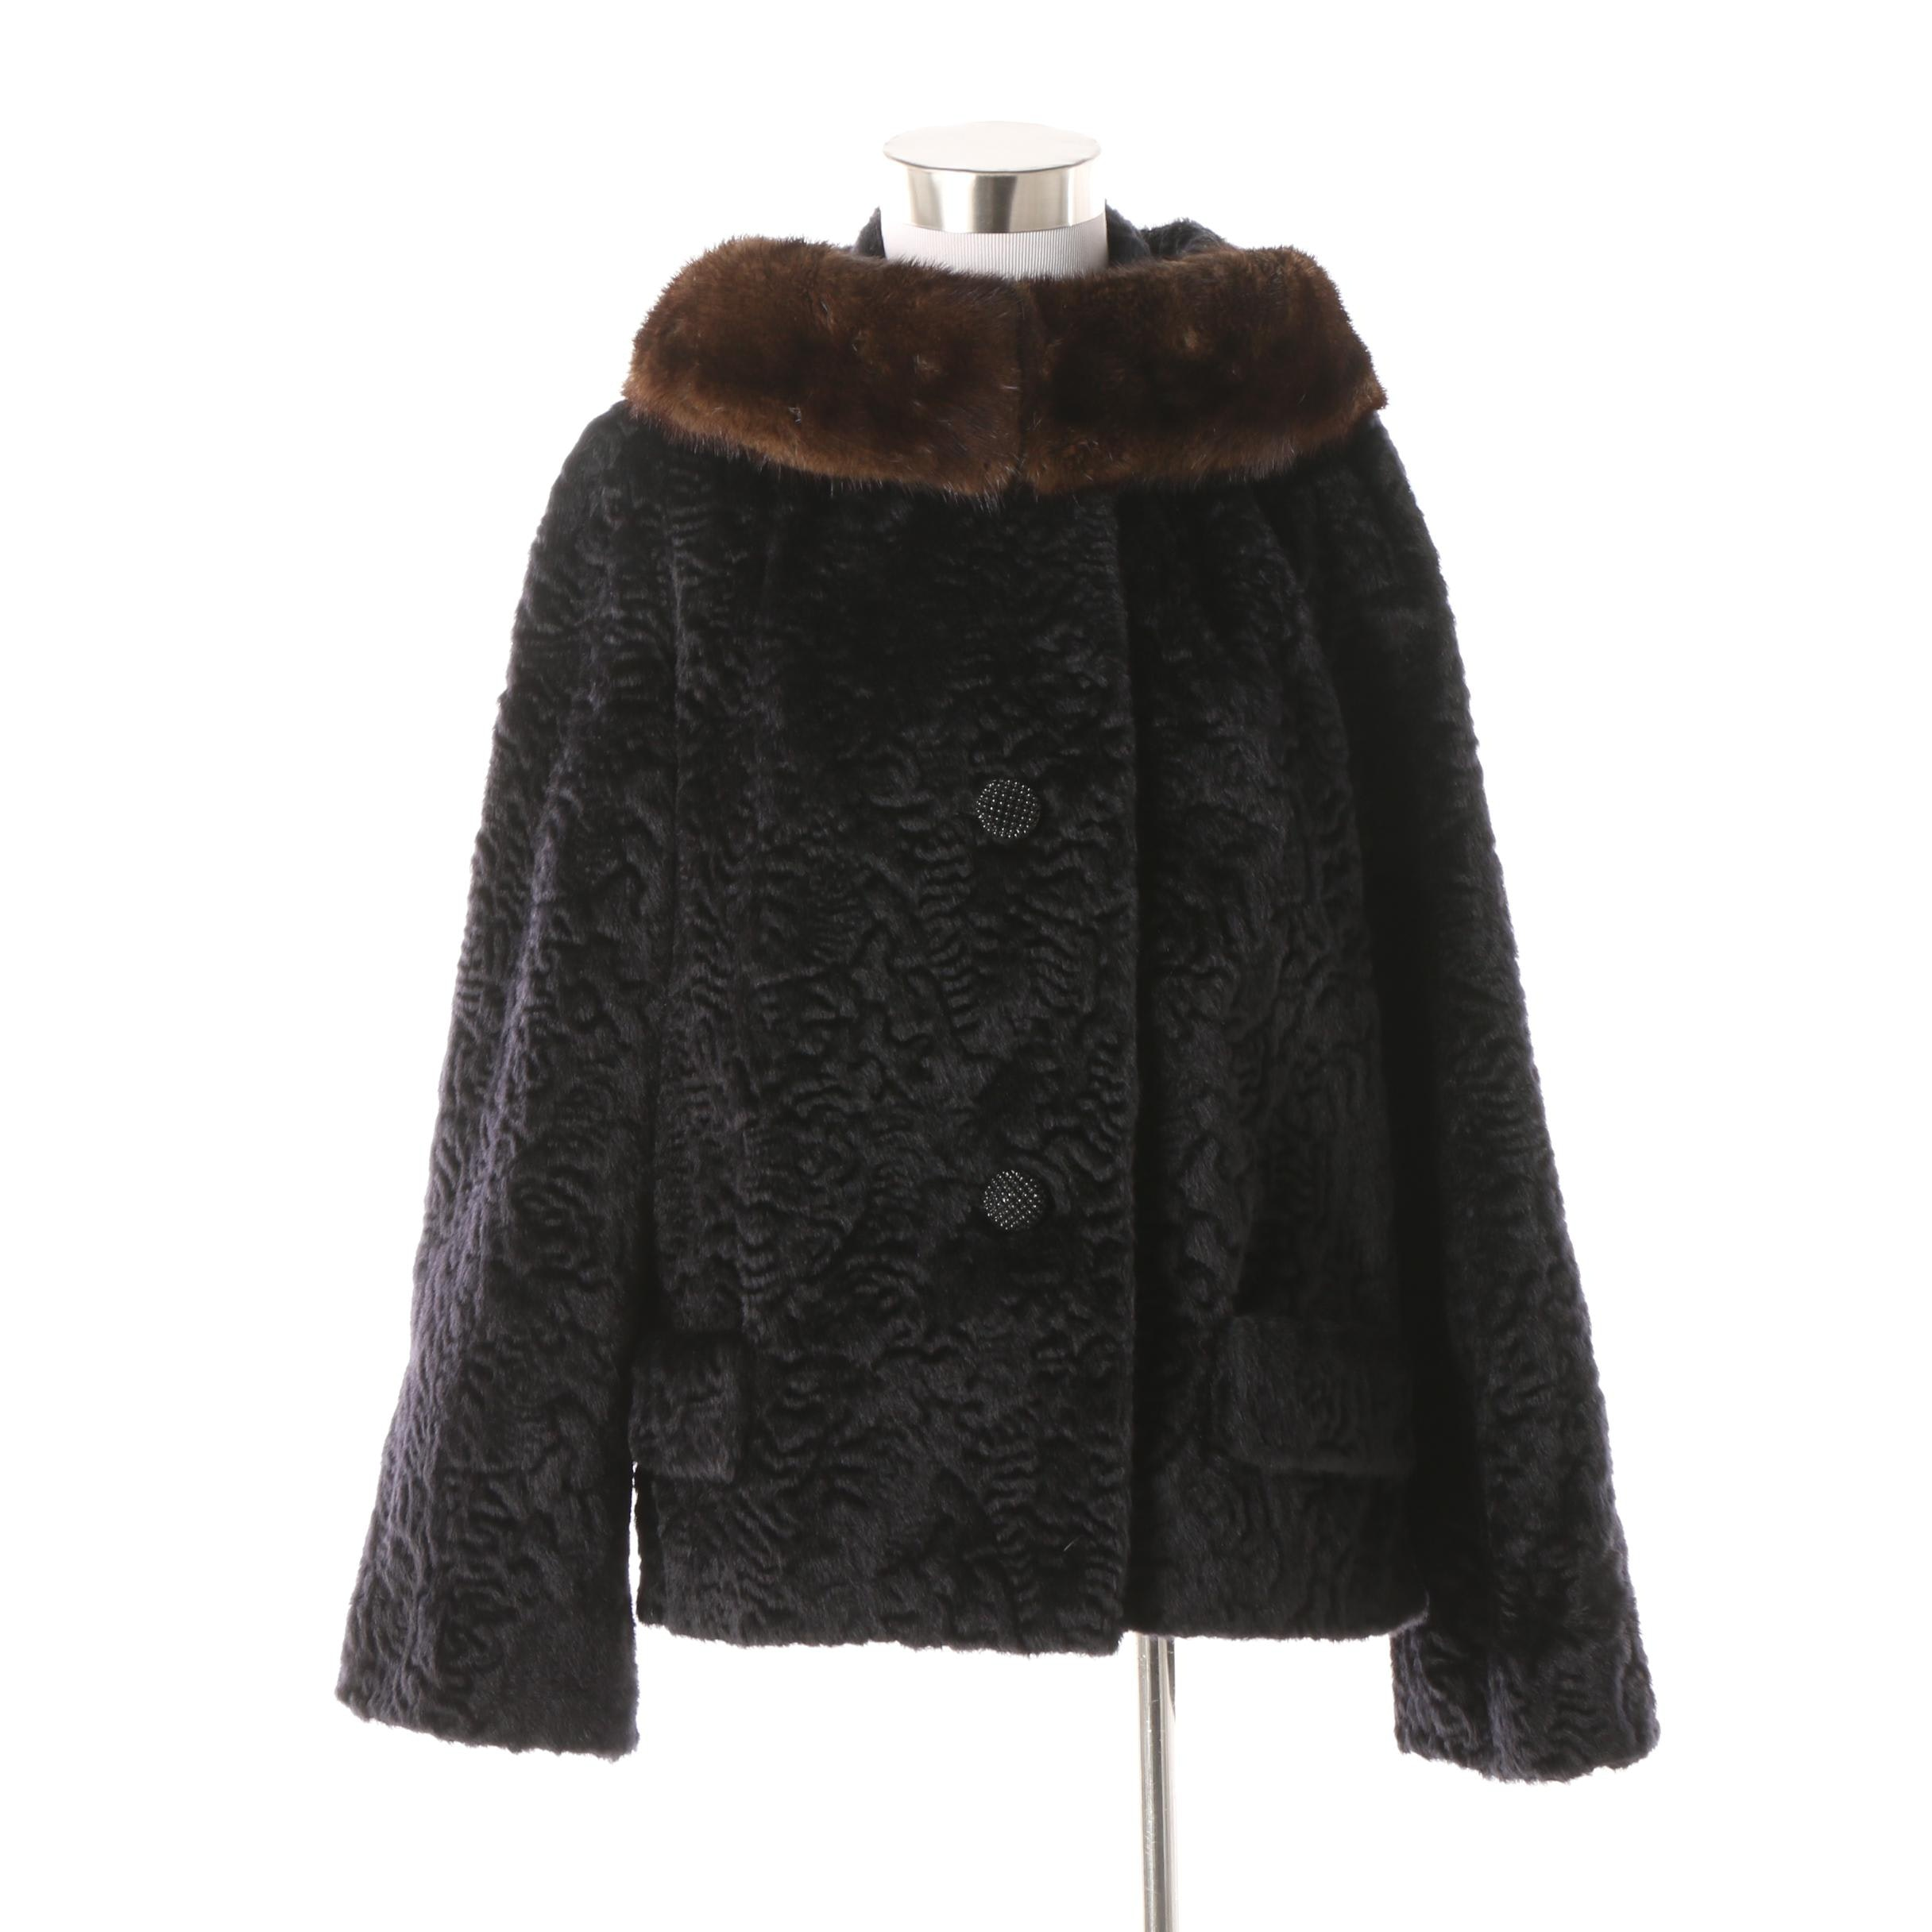 Evans Chicago Faux Broadtail Lamb Fur Jacket with Mink Fur Collar